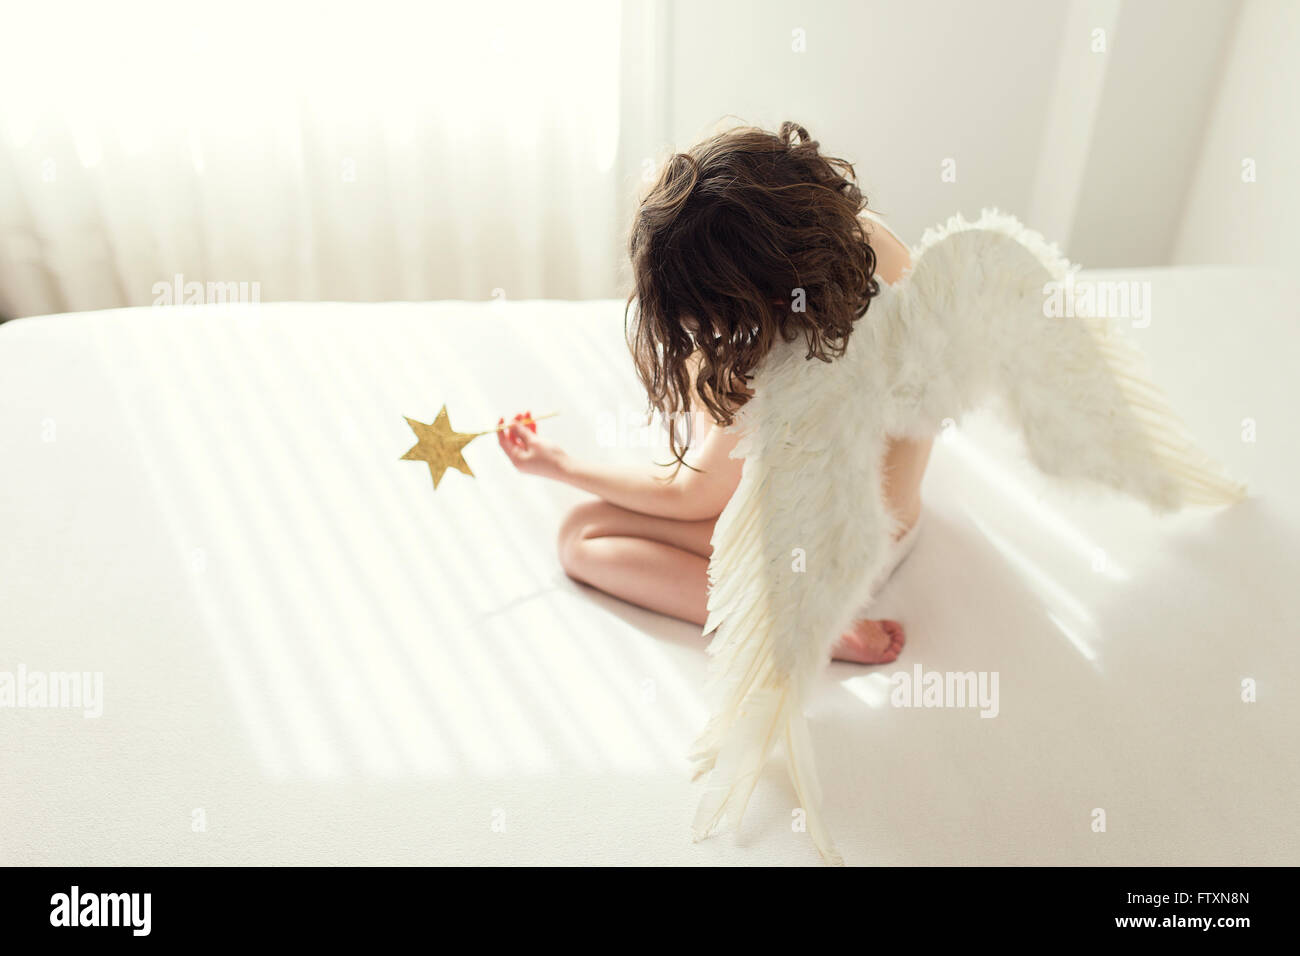 Girl sitting on bed dressed in angel wings holding star wand - Stock Image